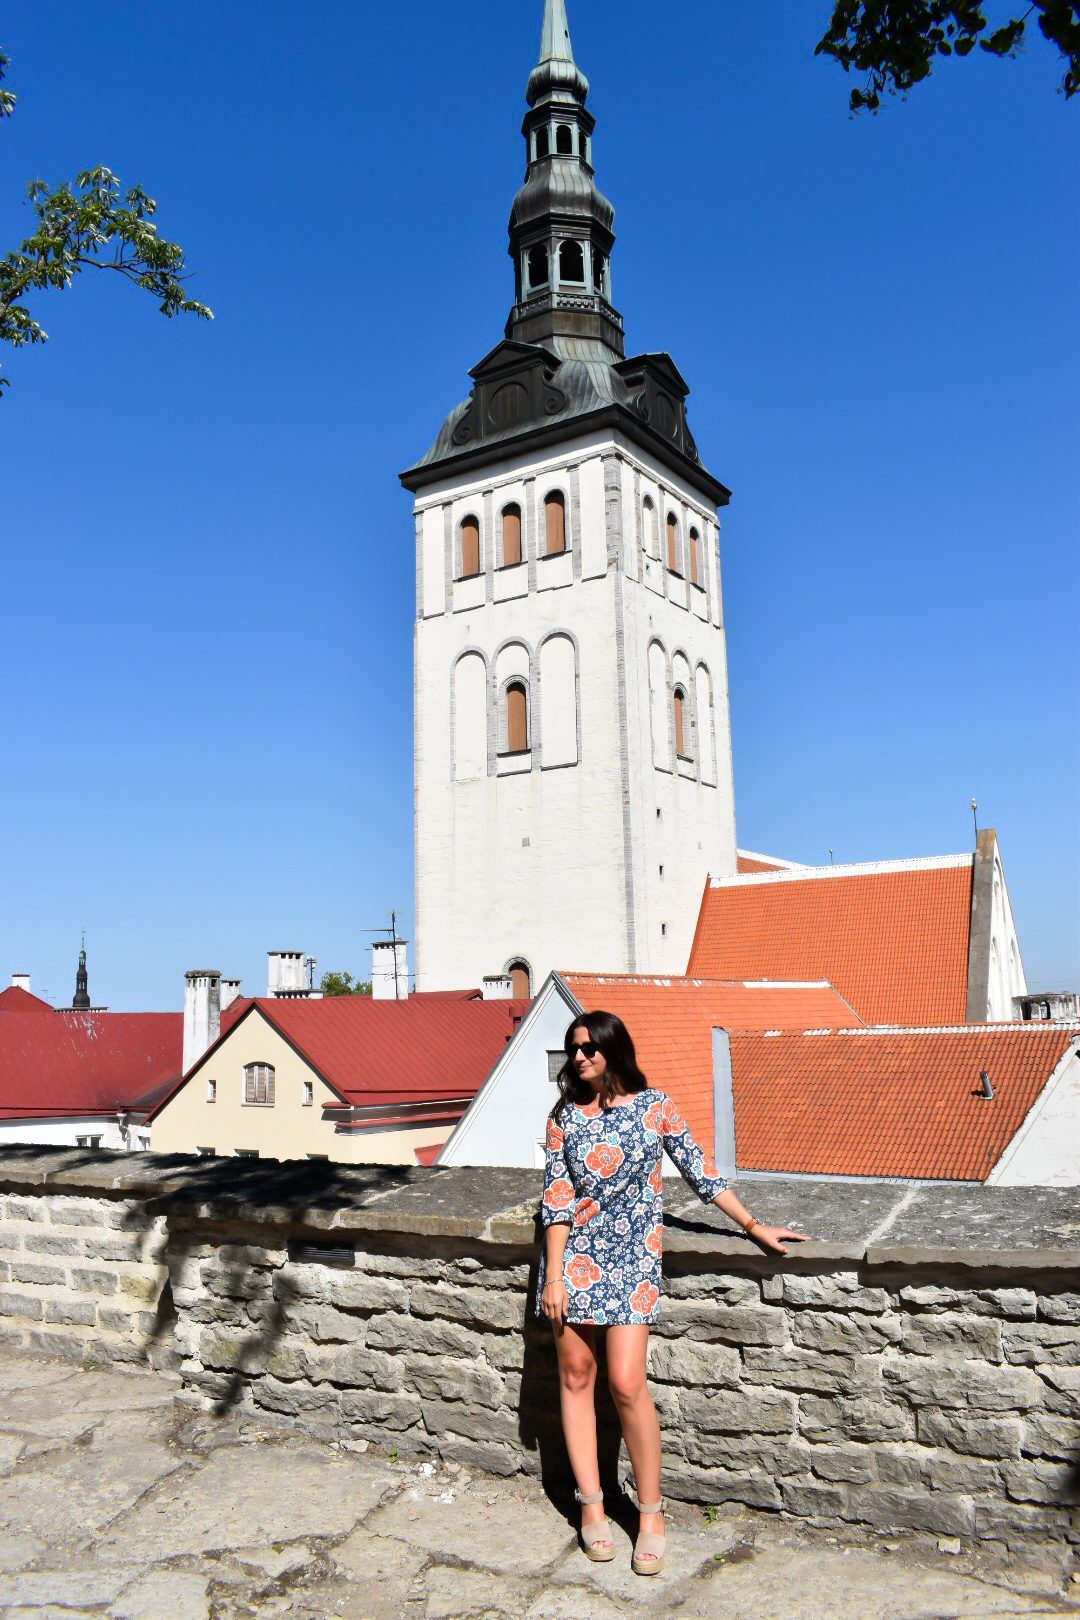 Erin leans against a stone wall in front of a tower in Tallinn Estonia